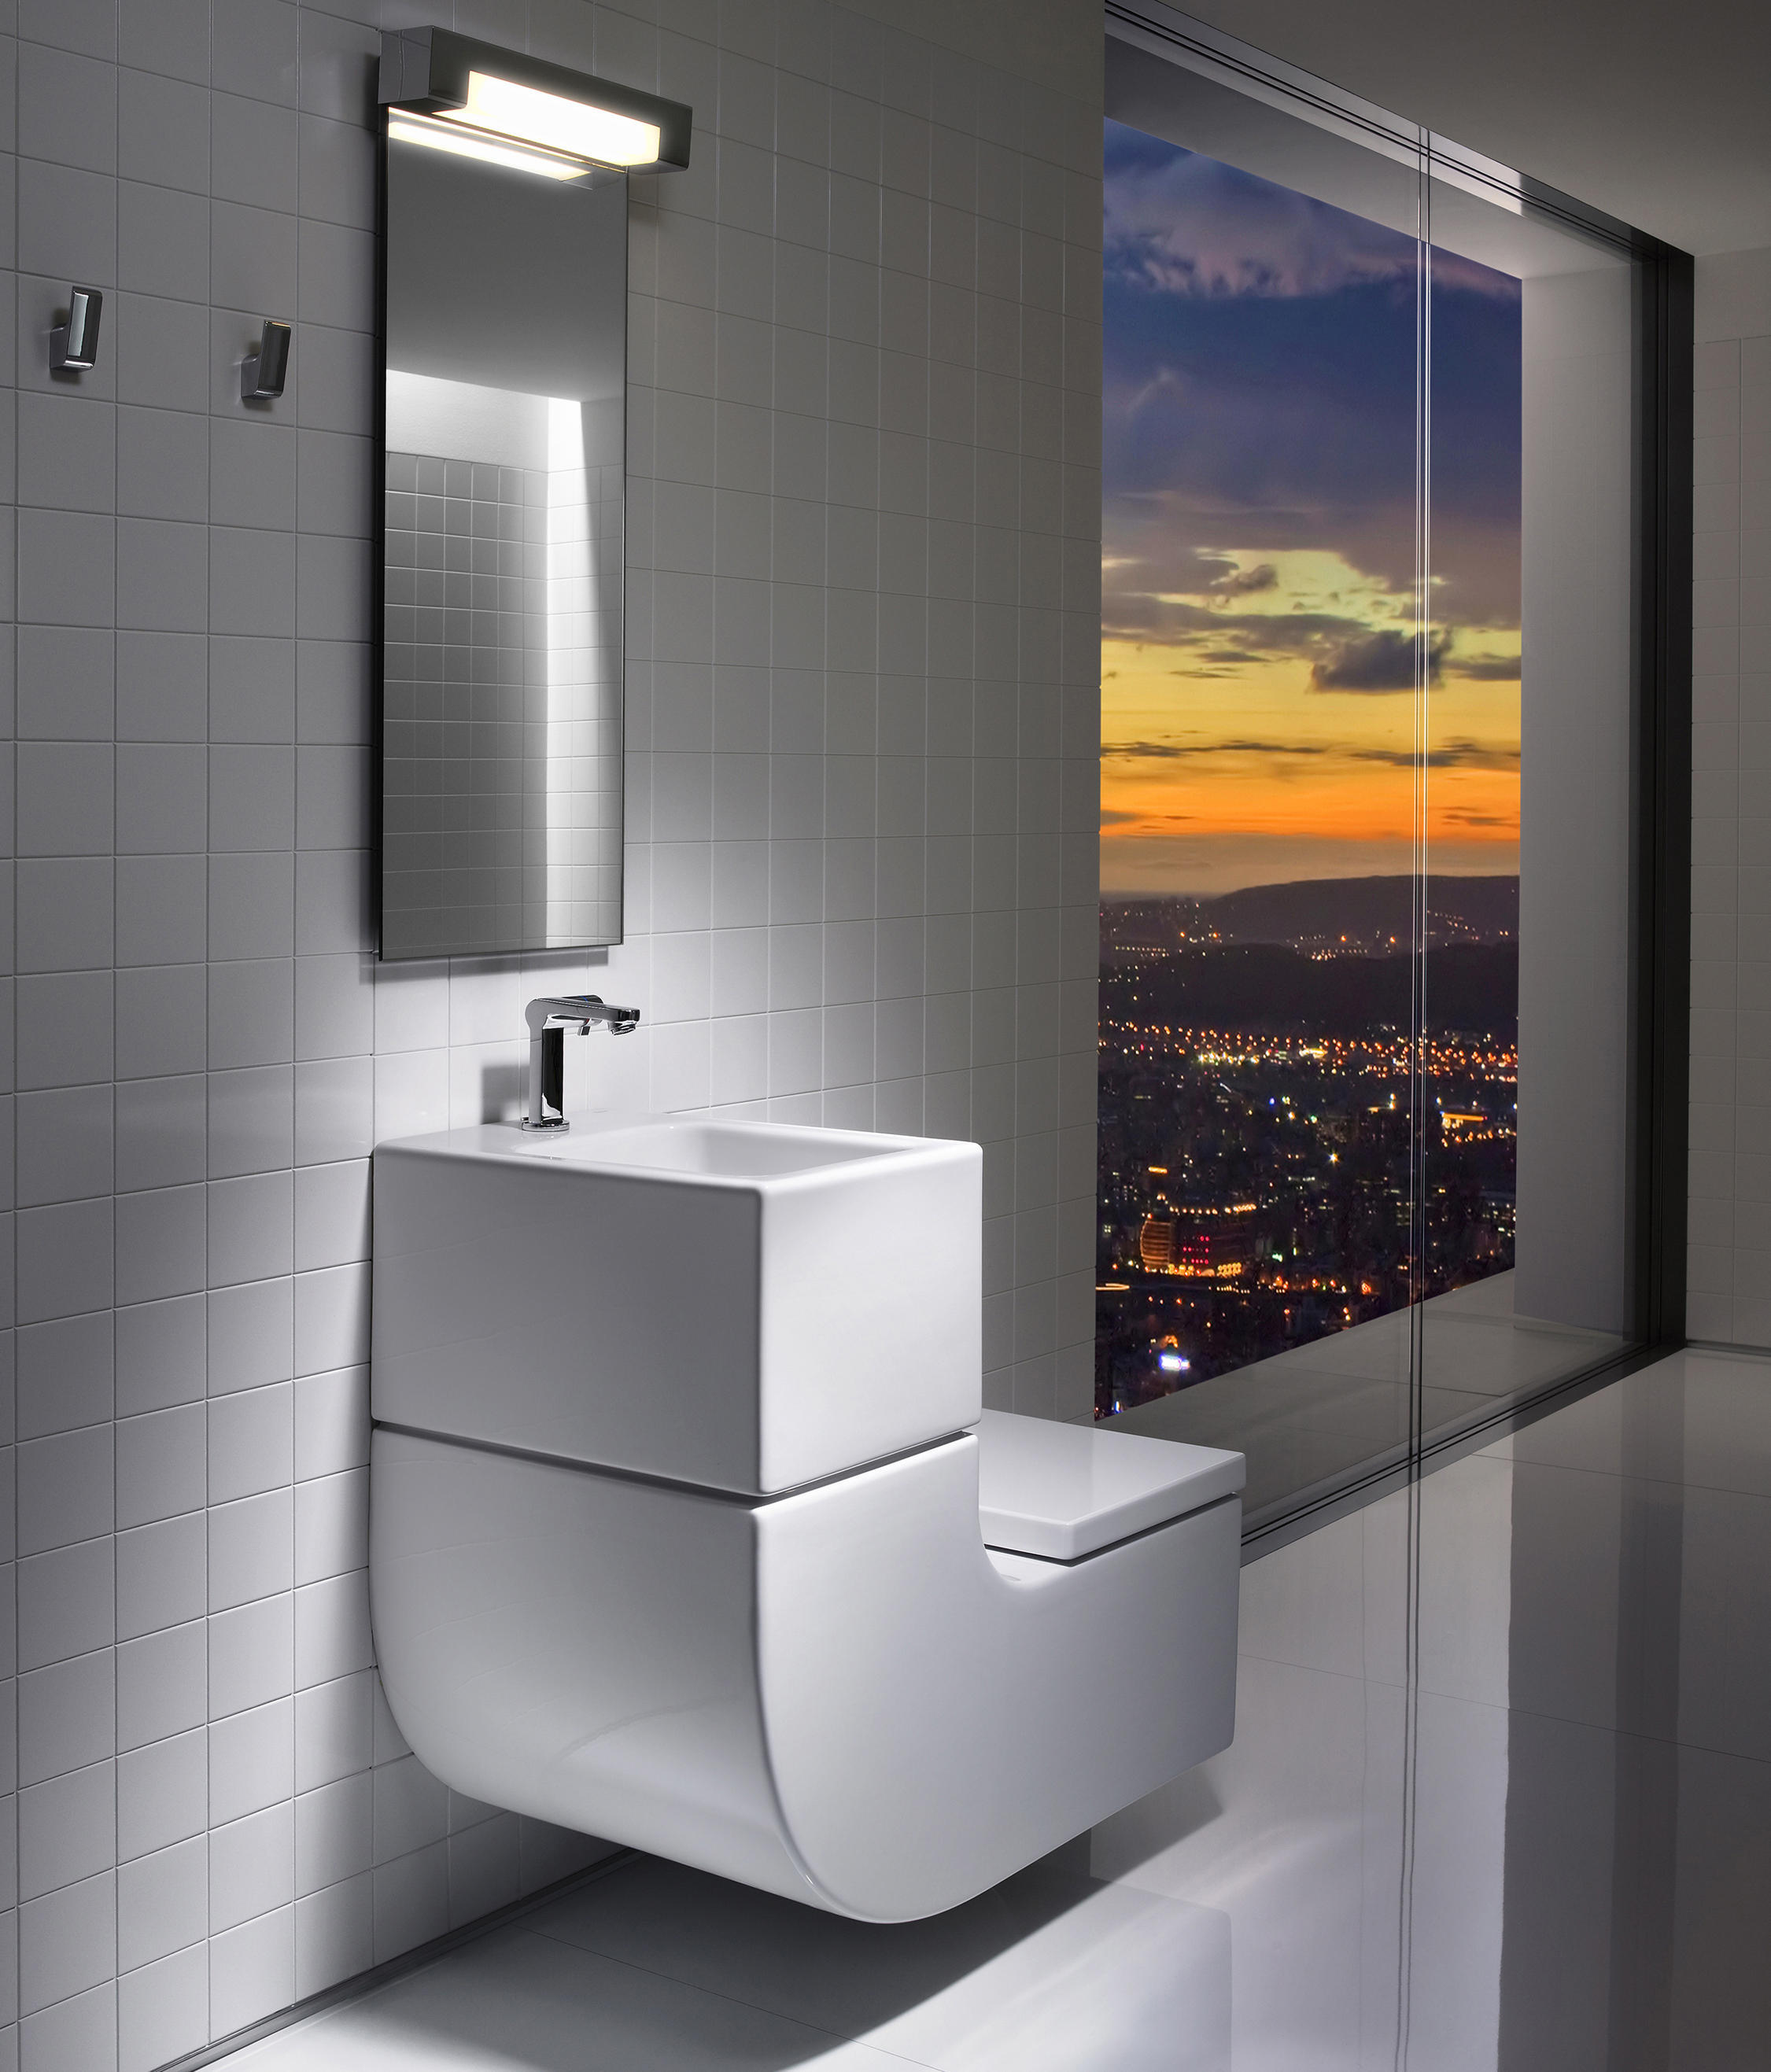 w w washbasin wc toilets from roca architonic. Black Bedroom Furniture Sets. Home Design Ideas